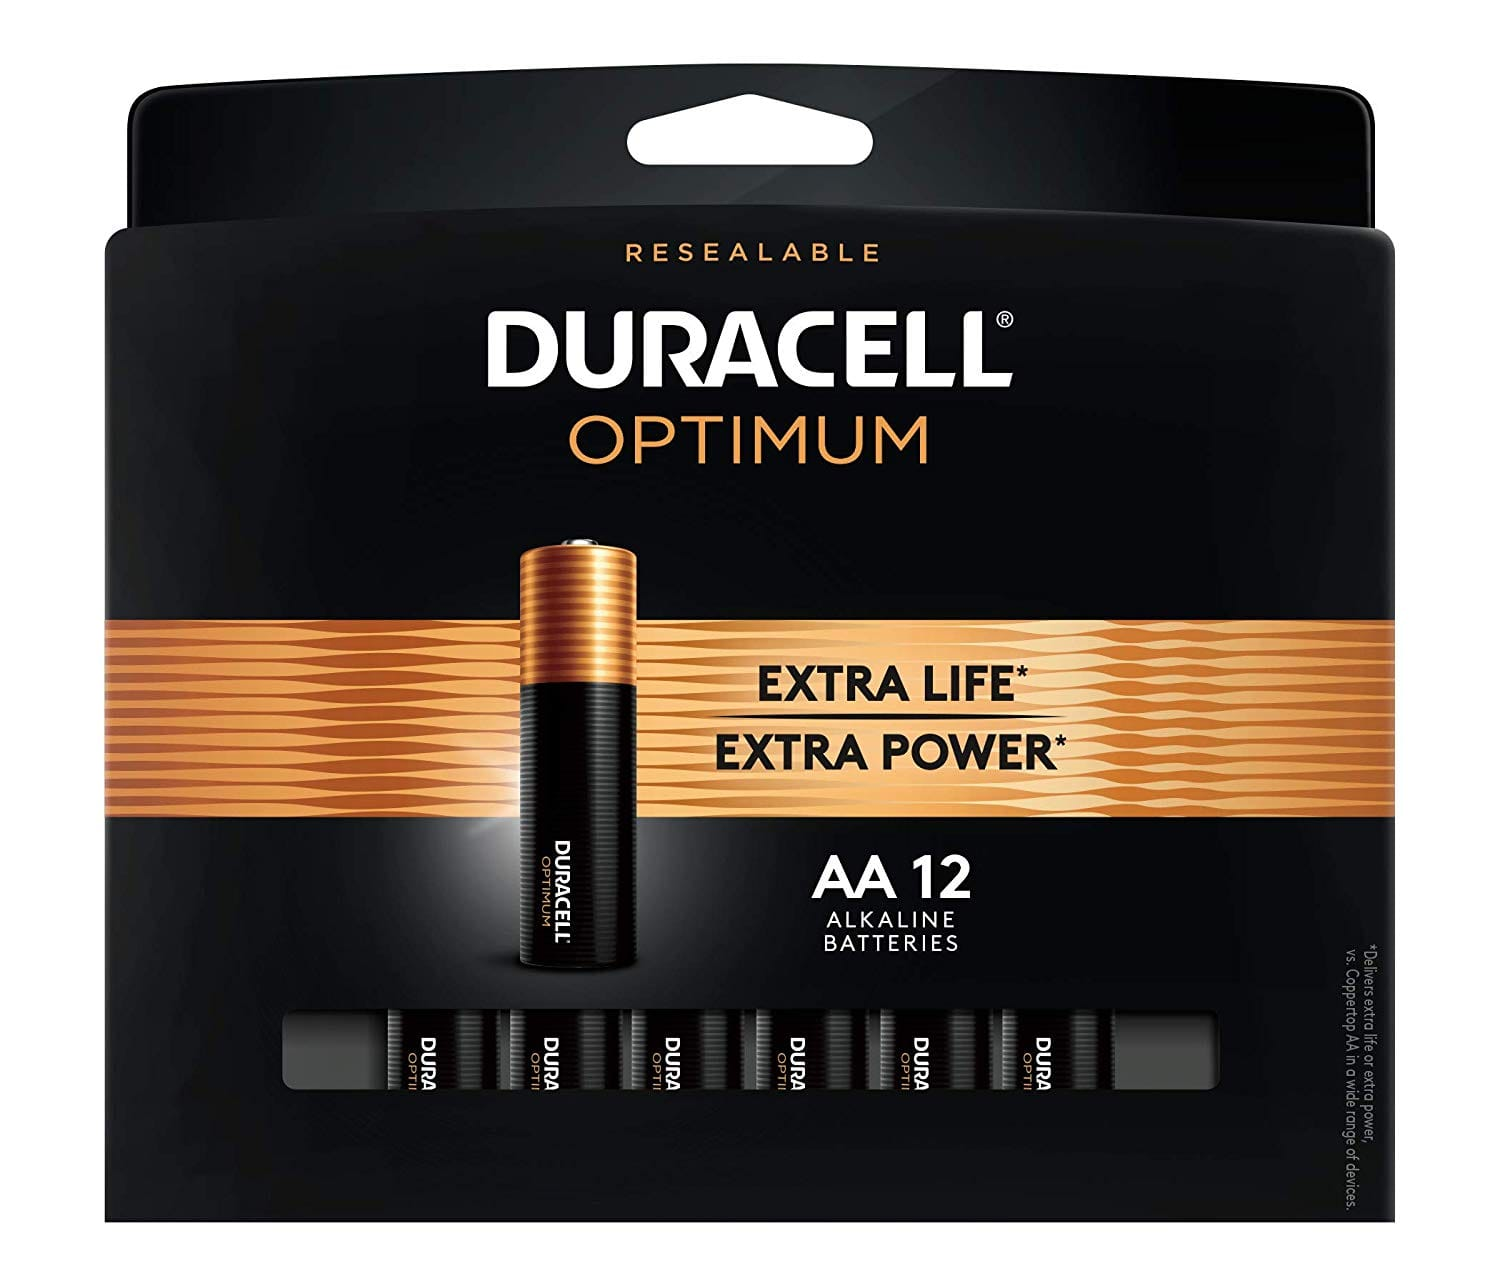 12 count Duracell Optimum 1.5V Alkaline AA Batteries - Long Lasting, Double A Battery with Convenient, Resealable Package: As low as $5.75 w/15% S&S and A/c, $7.03 w/5% S&S